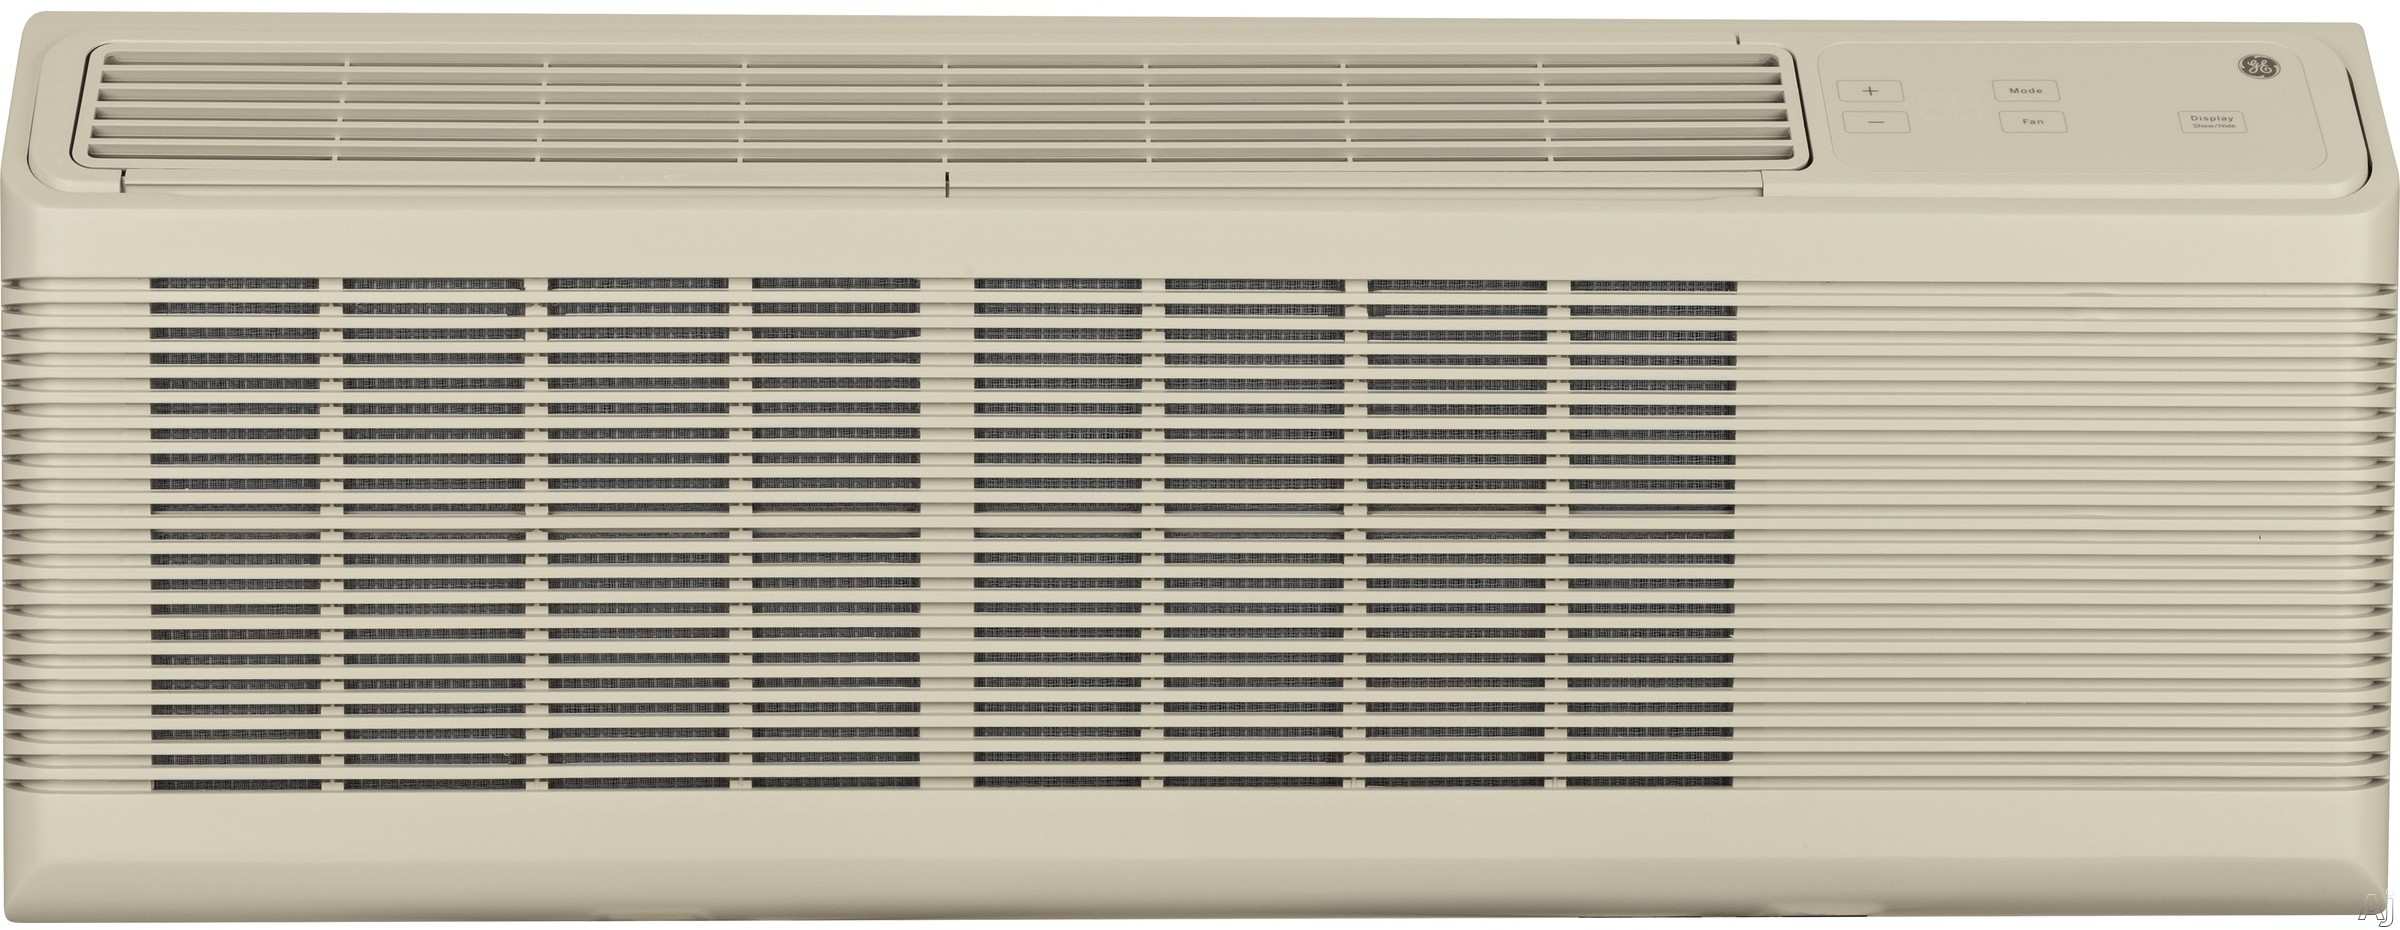 GE Zoneline 9,700 BTU 12.2 EER 230V Wall Air Conditioner - AZ65H09DAC